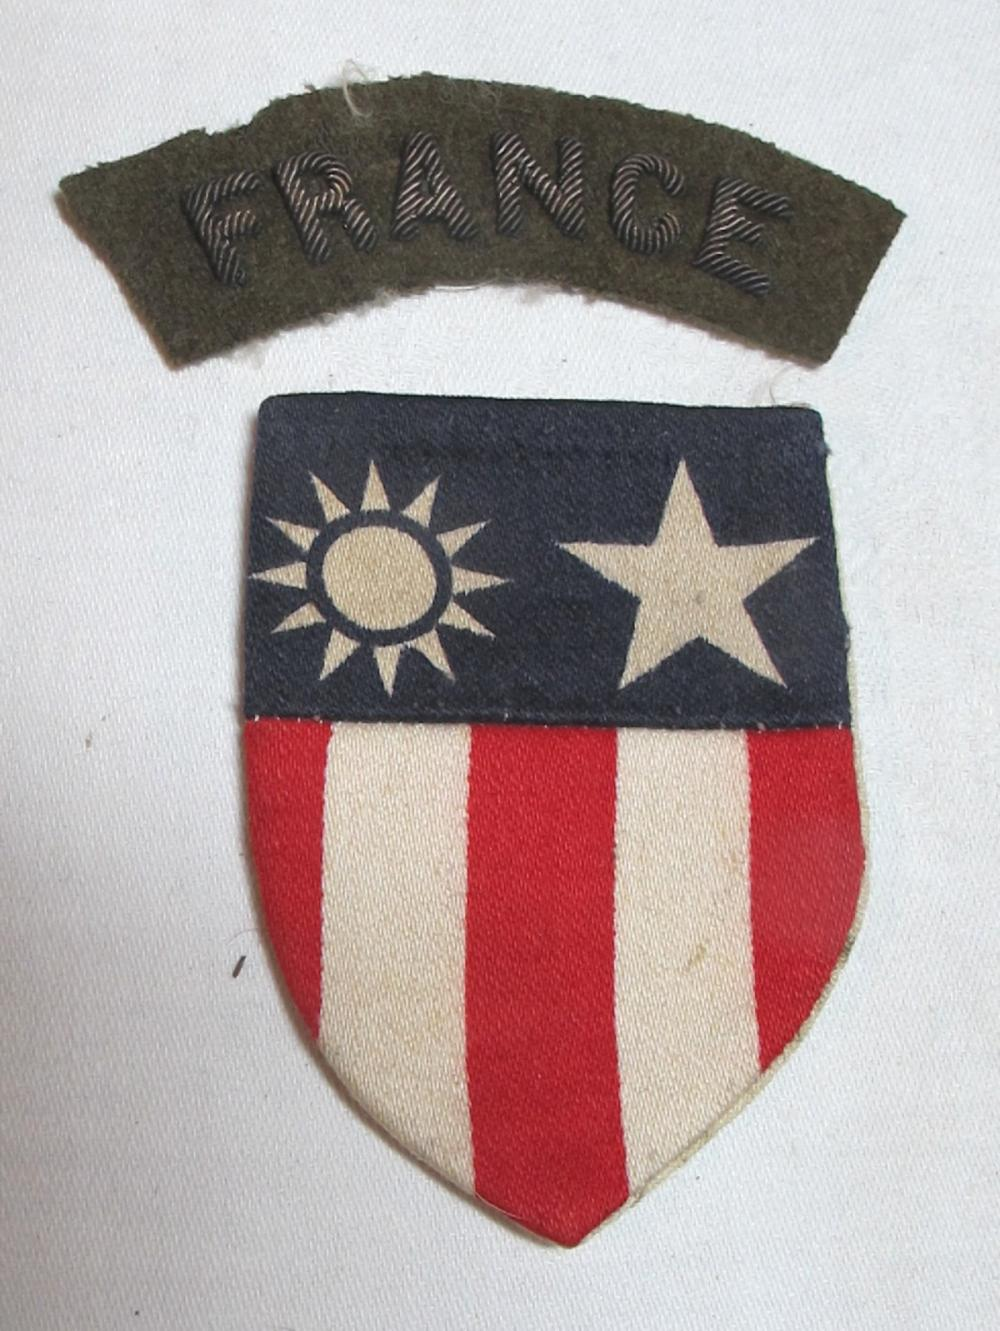 WWII THEATER MADE SILK CBI CHINA BURMA INDIA PATCH AND FRANCE BULLION PATCH